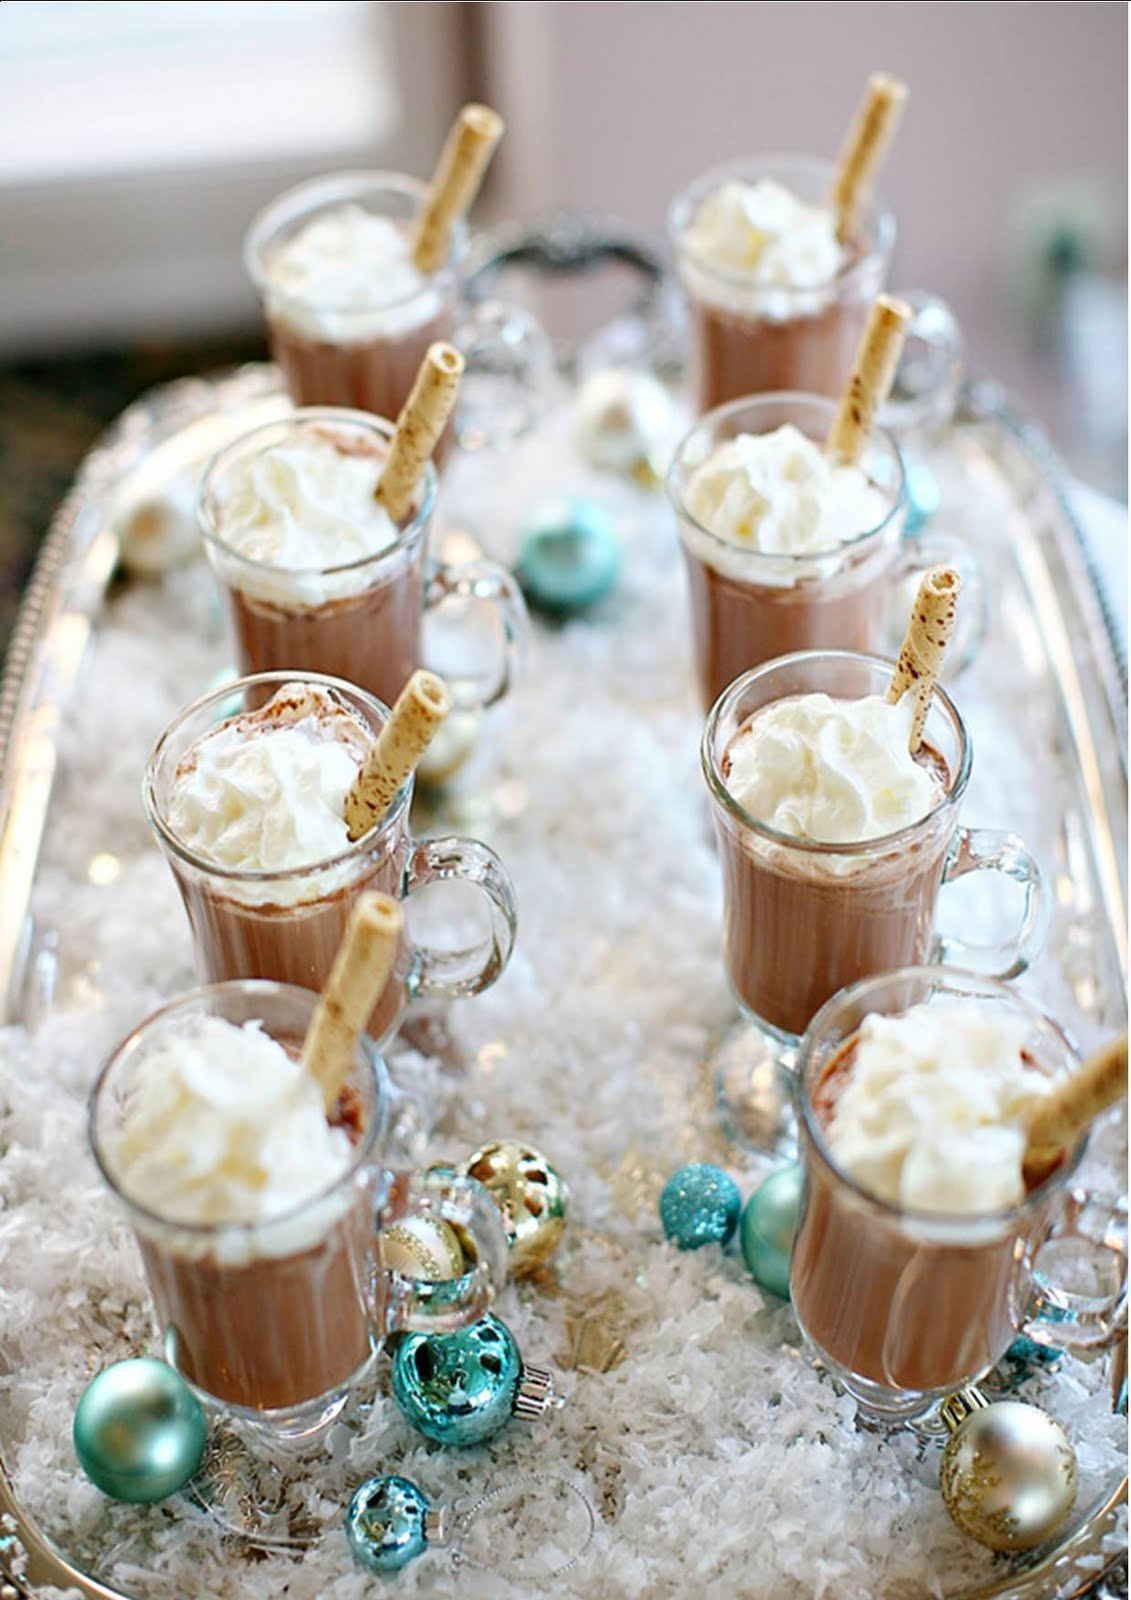 hot chocolate wedding drink with icy design for winter theme